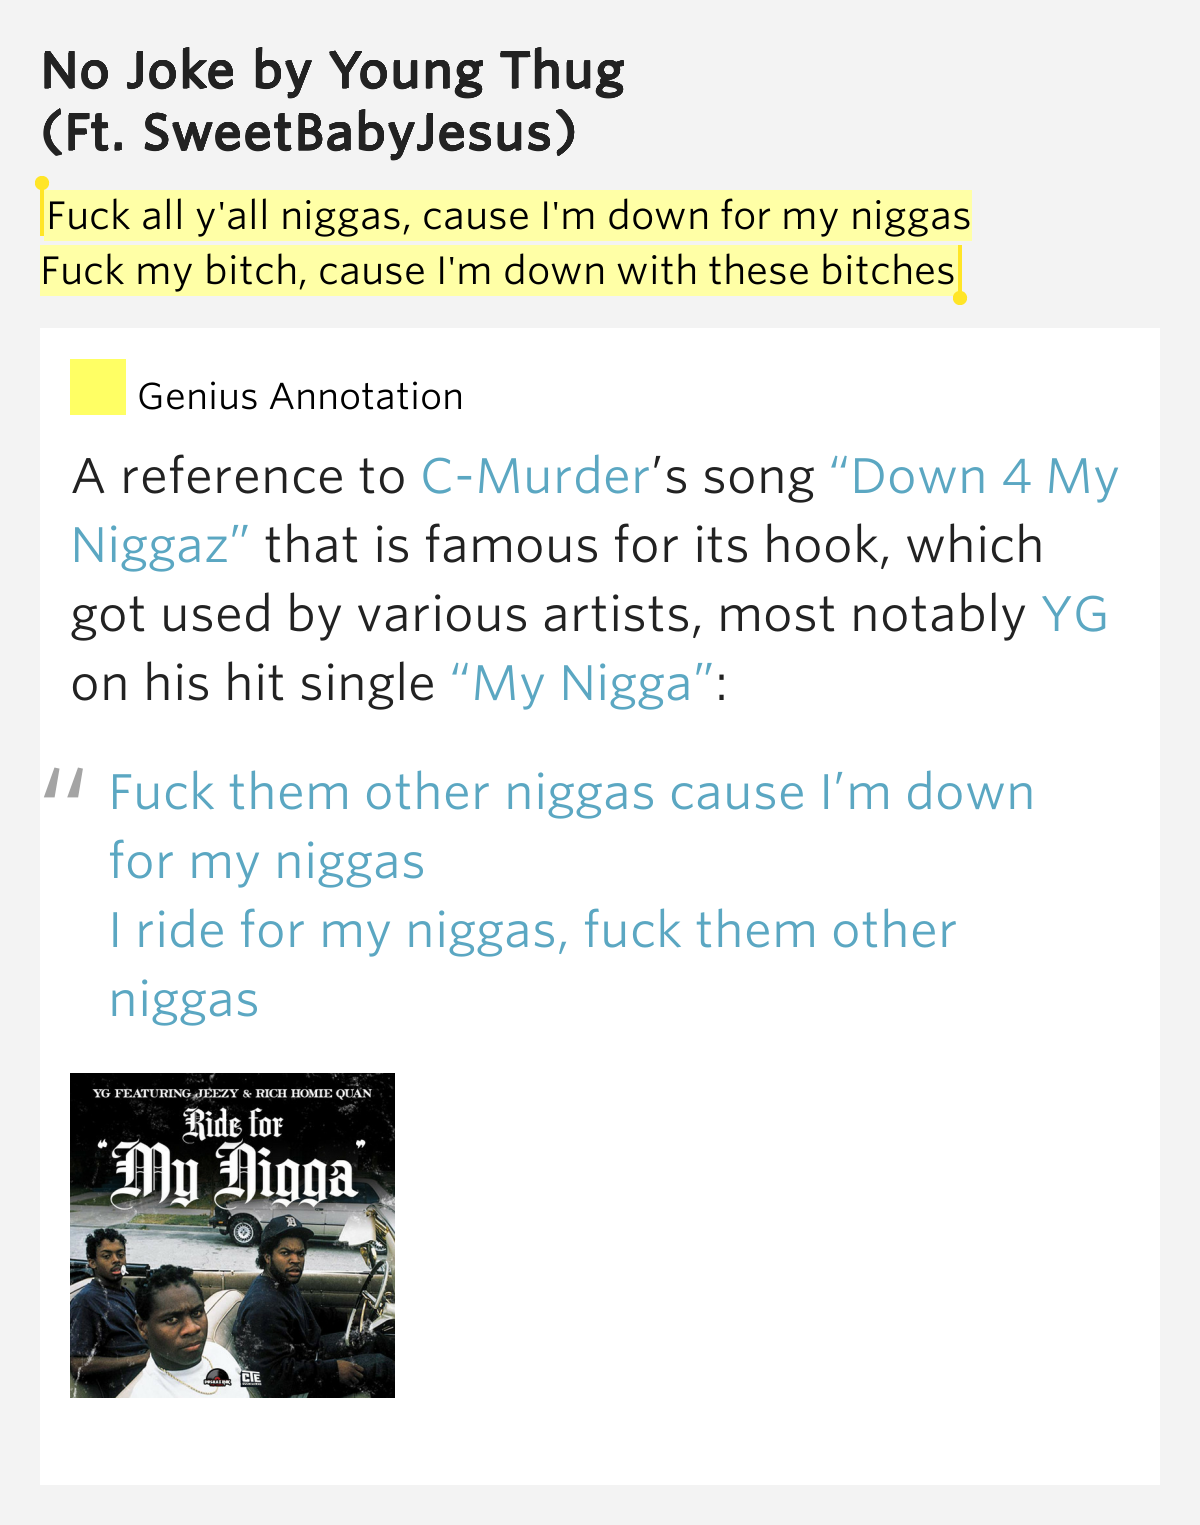 Fuck them other niggaz mp3